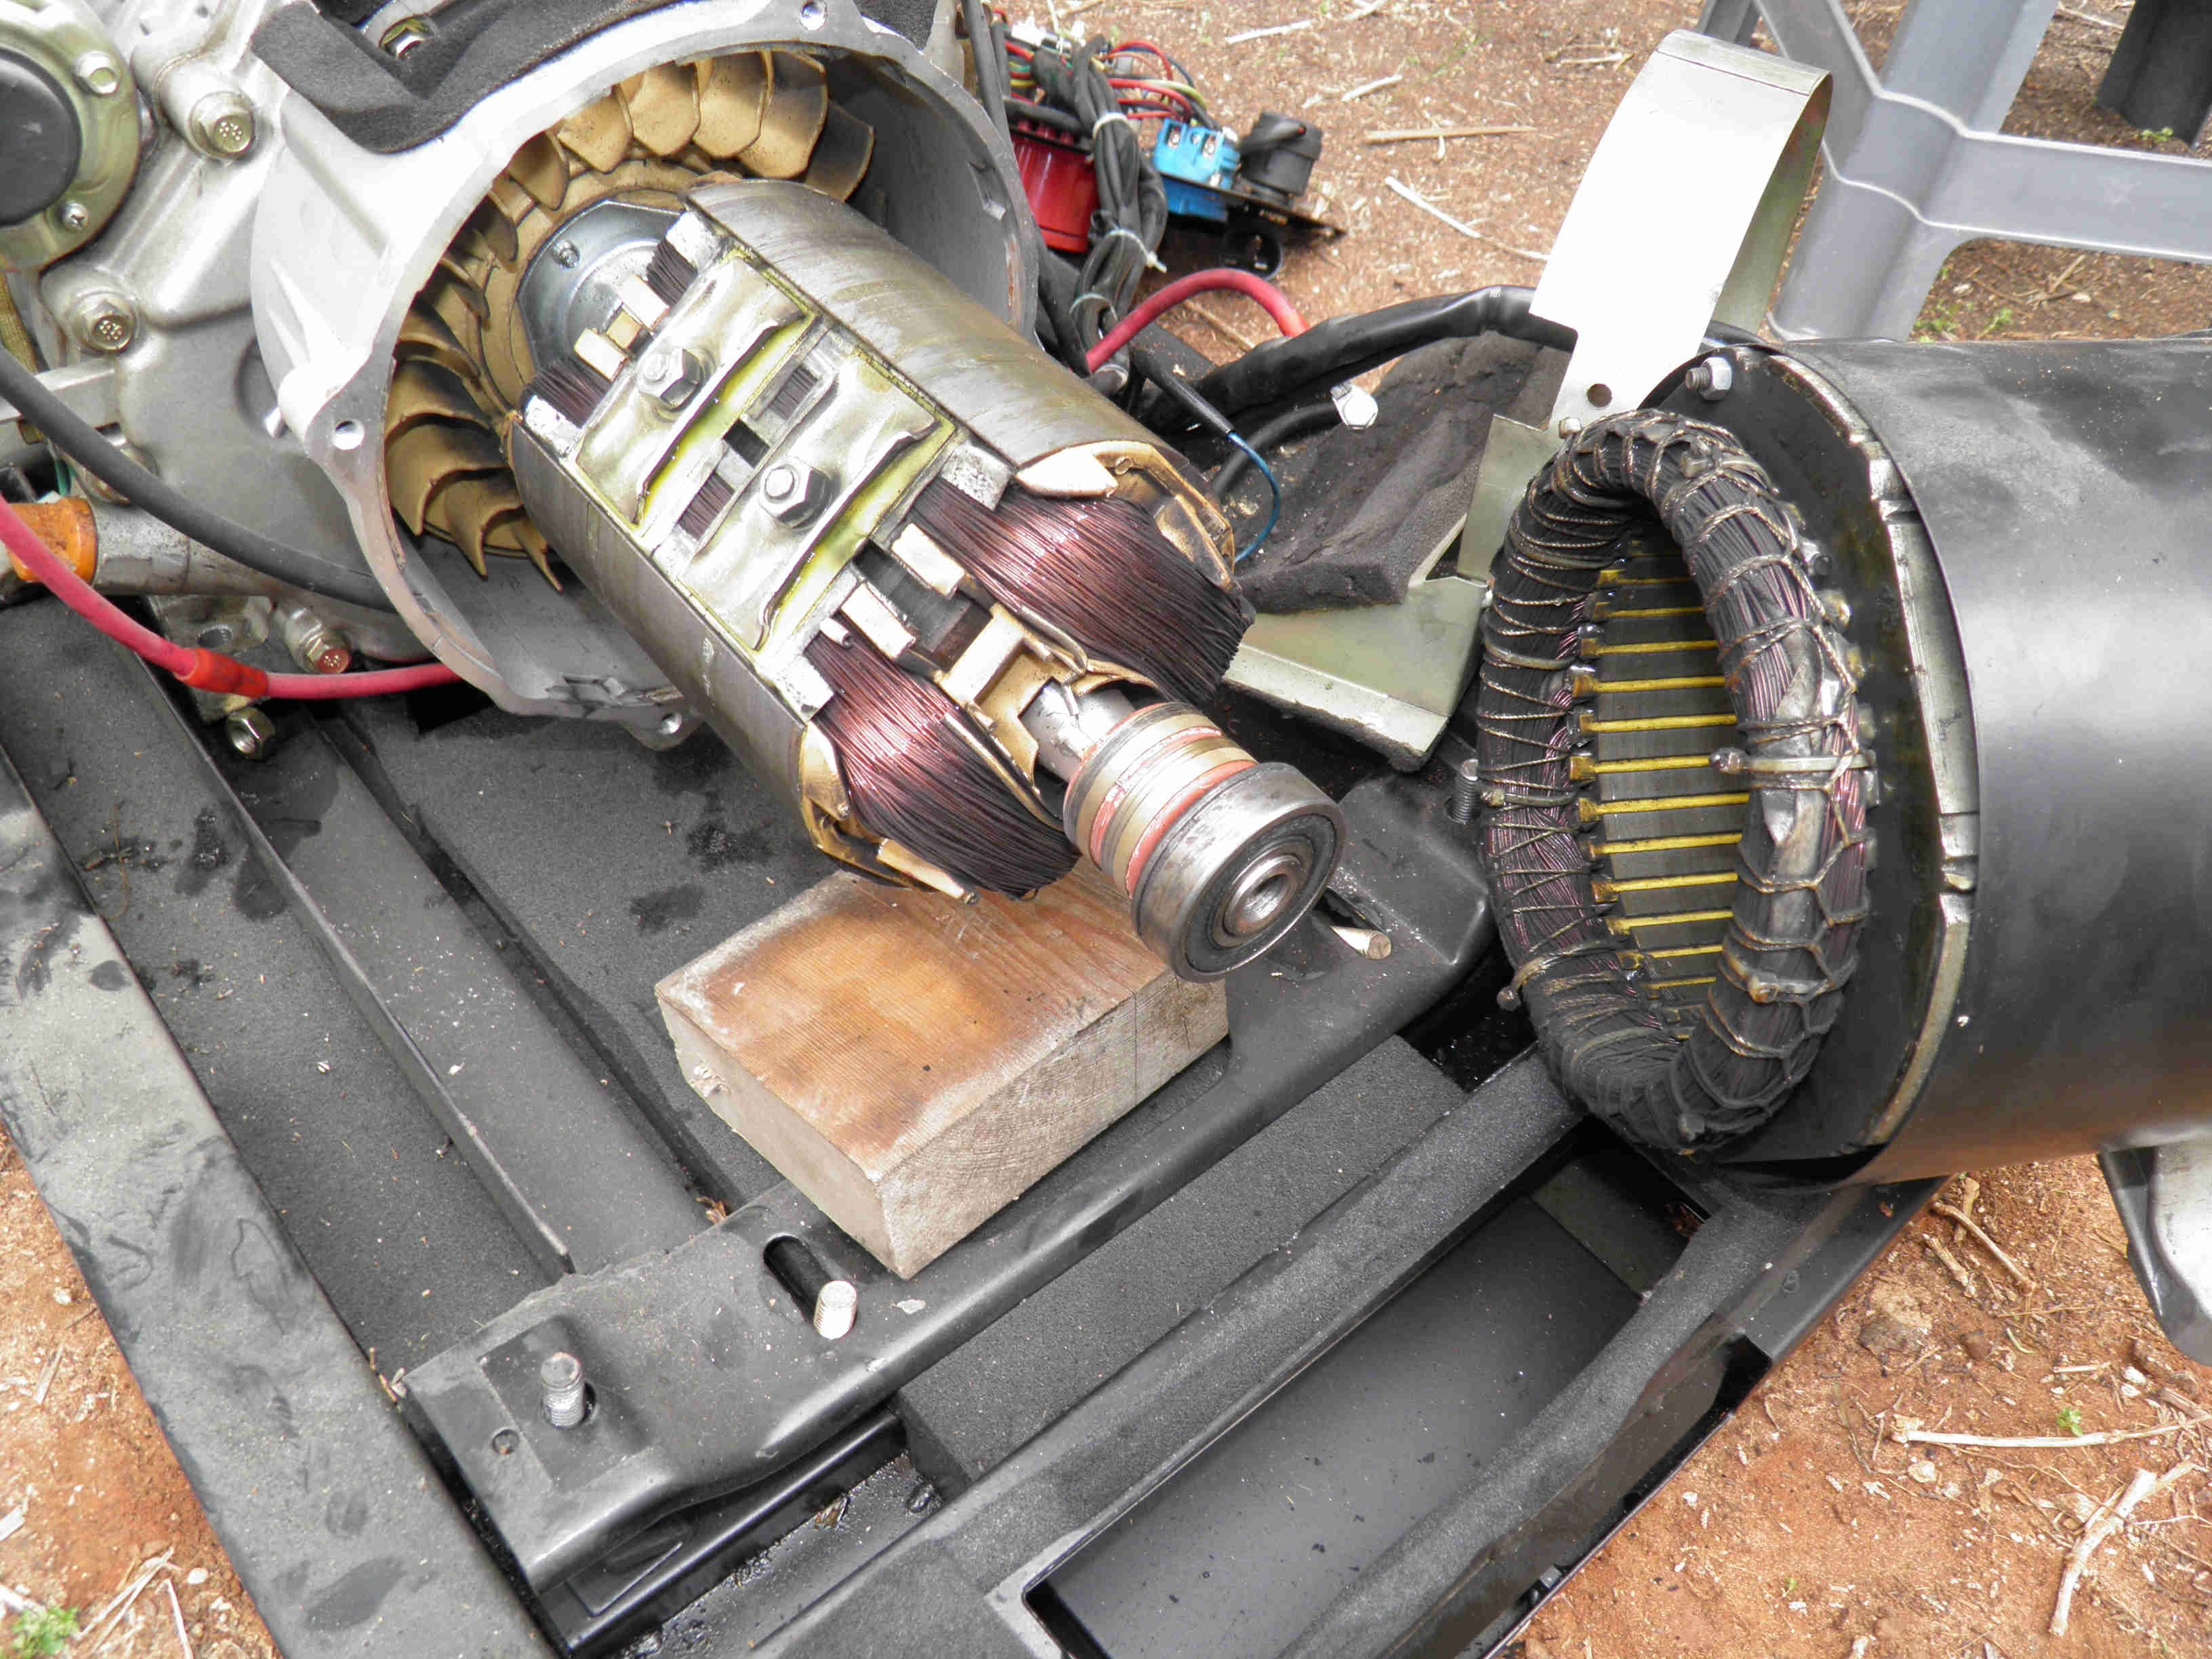 How to separate the alternator from the engine in a 5 or 6 KVA